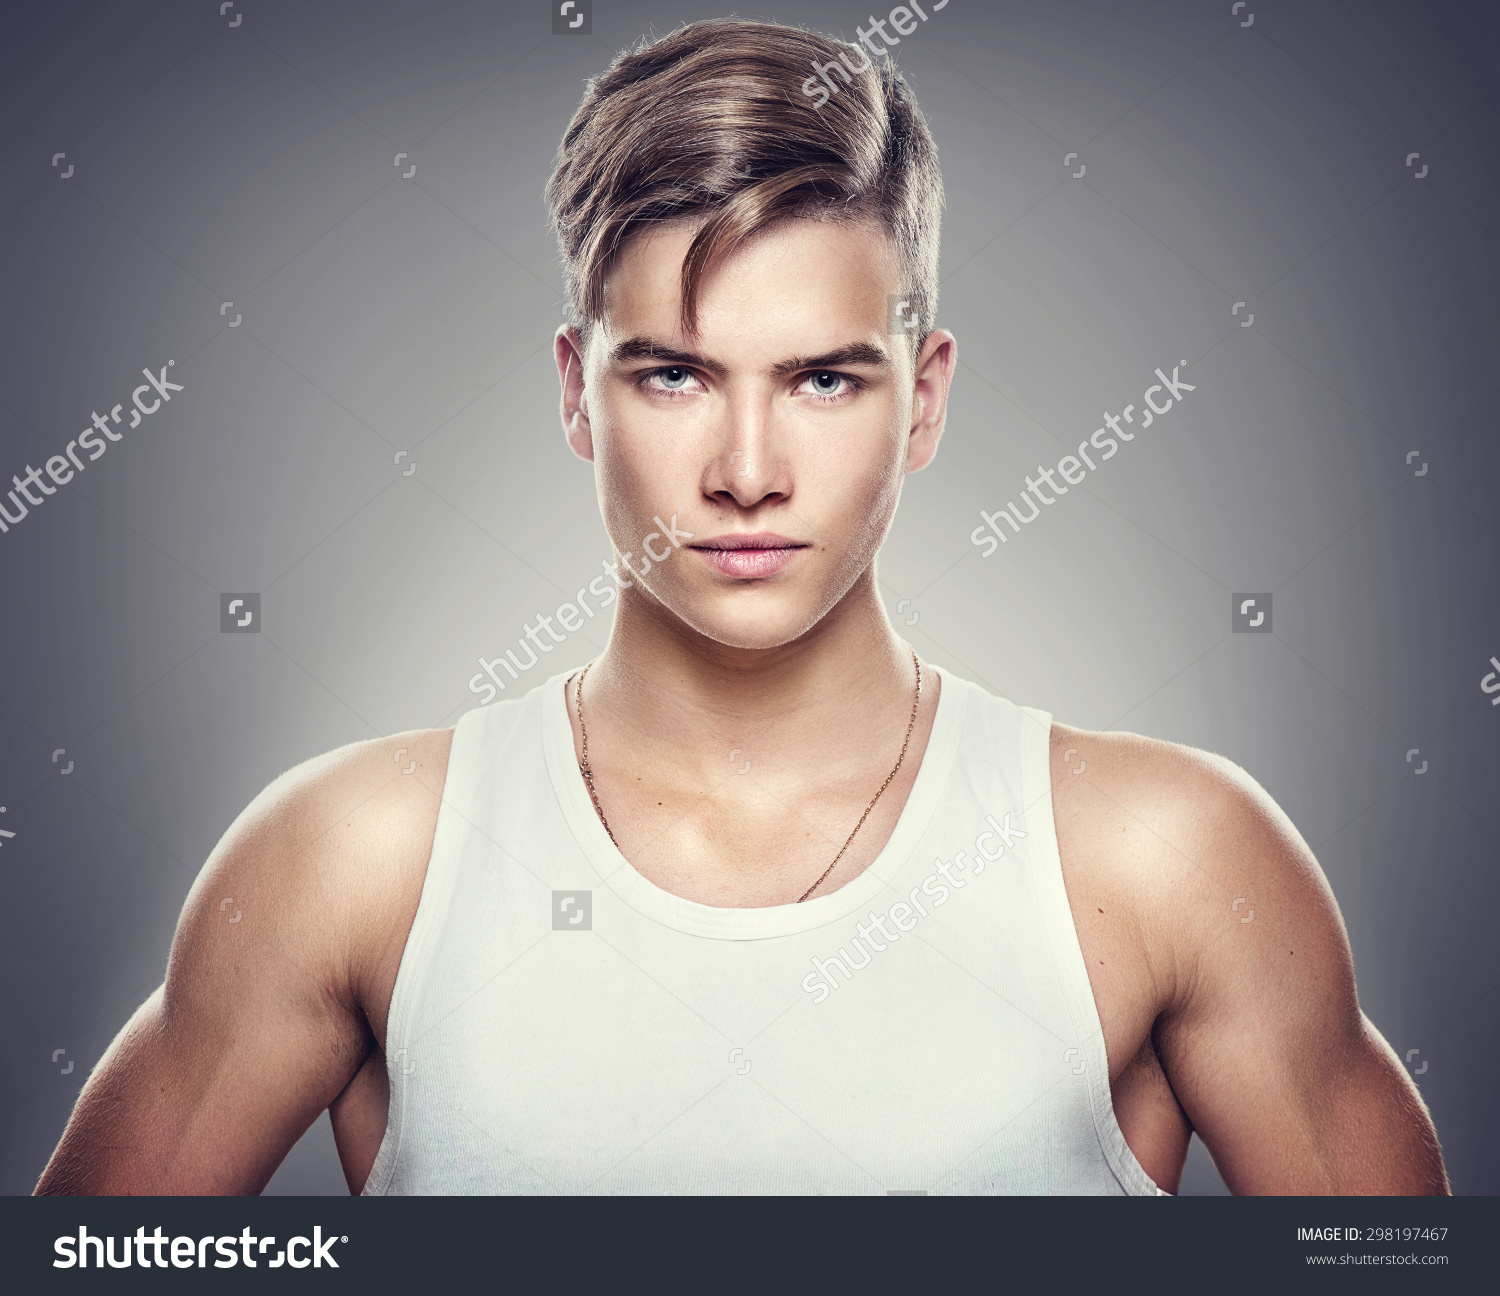 Handsome Athletic Young Man Isolated On Stock Photo 298197467.